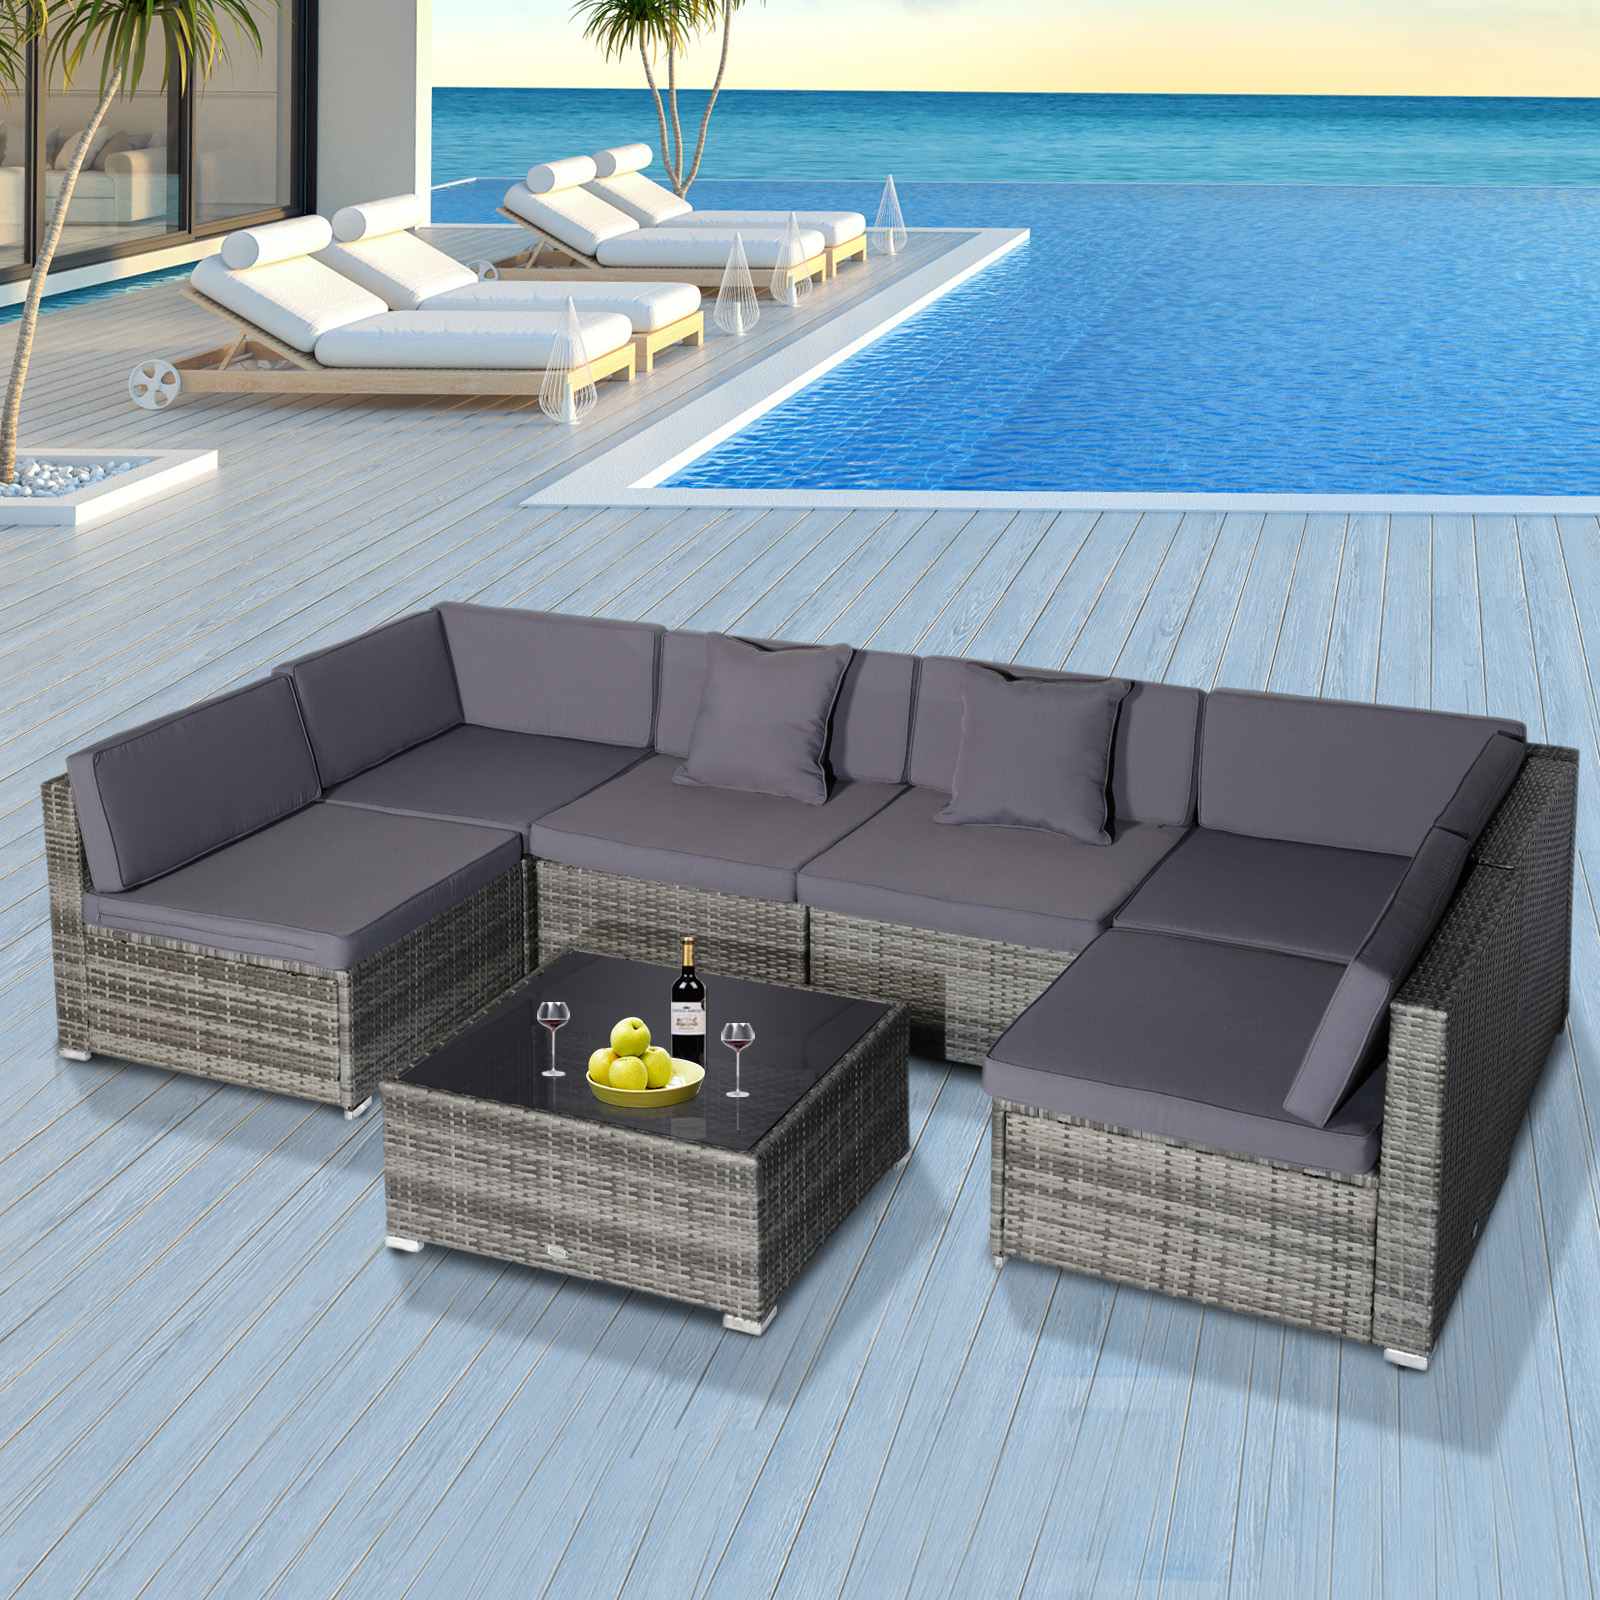 details about outsunny modern low back rattan chair sofa outdoor sectional patio furniture 7